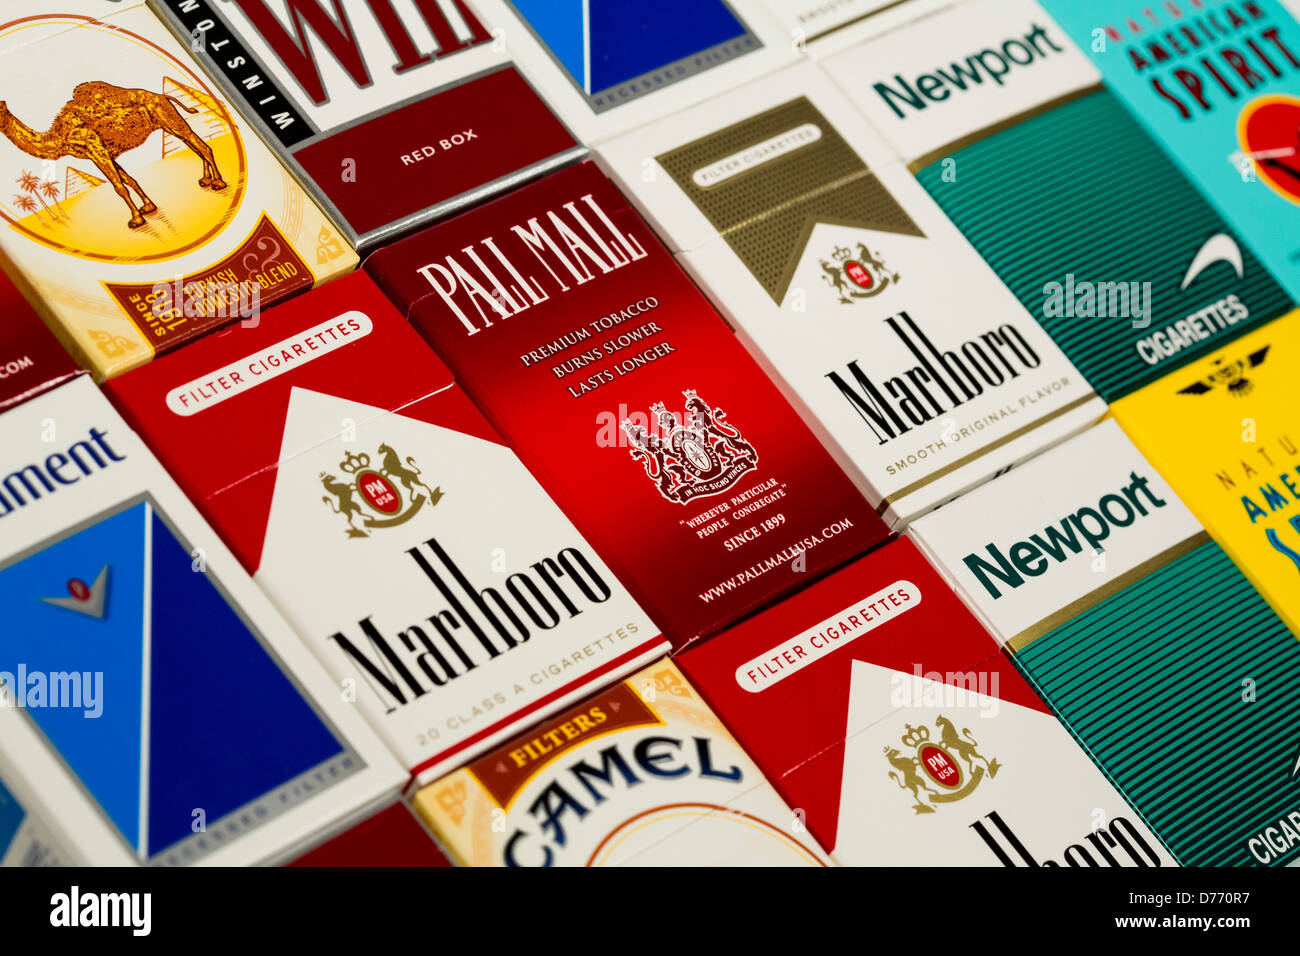 Buy cigarettes Bond online London